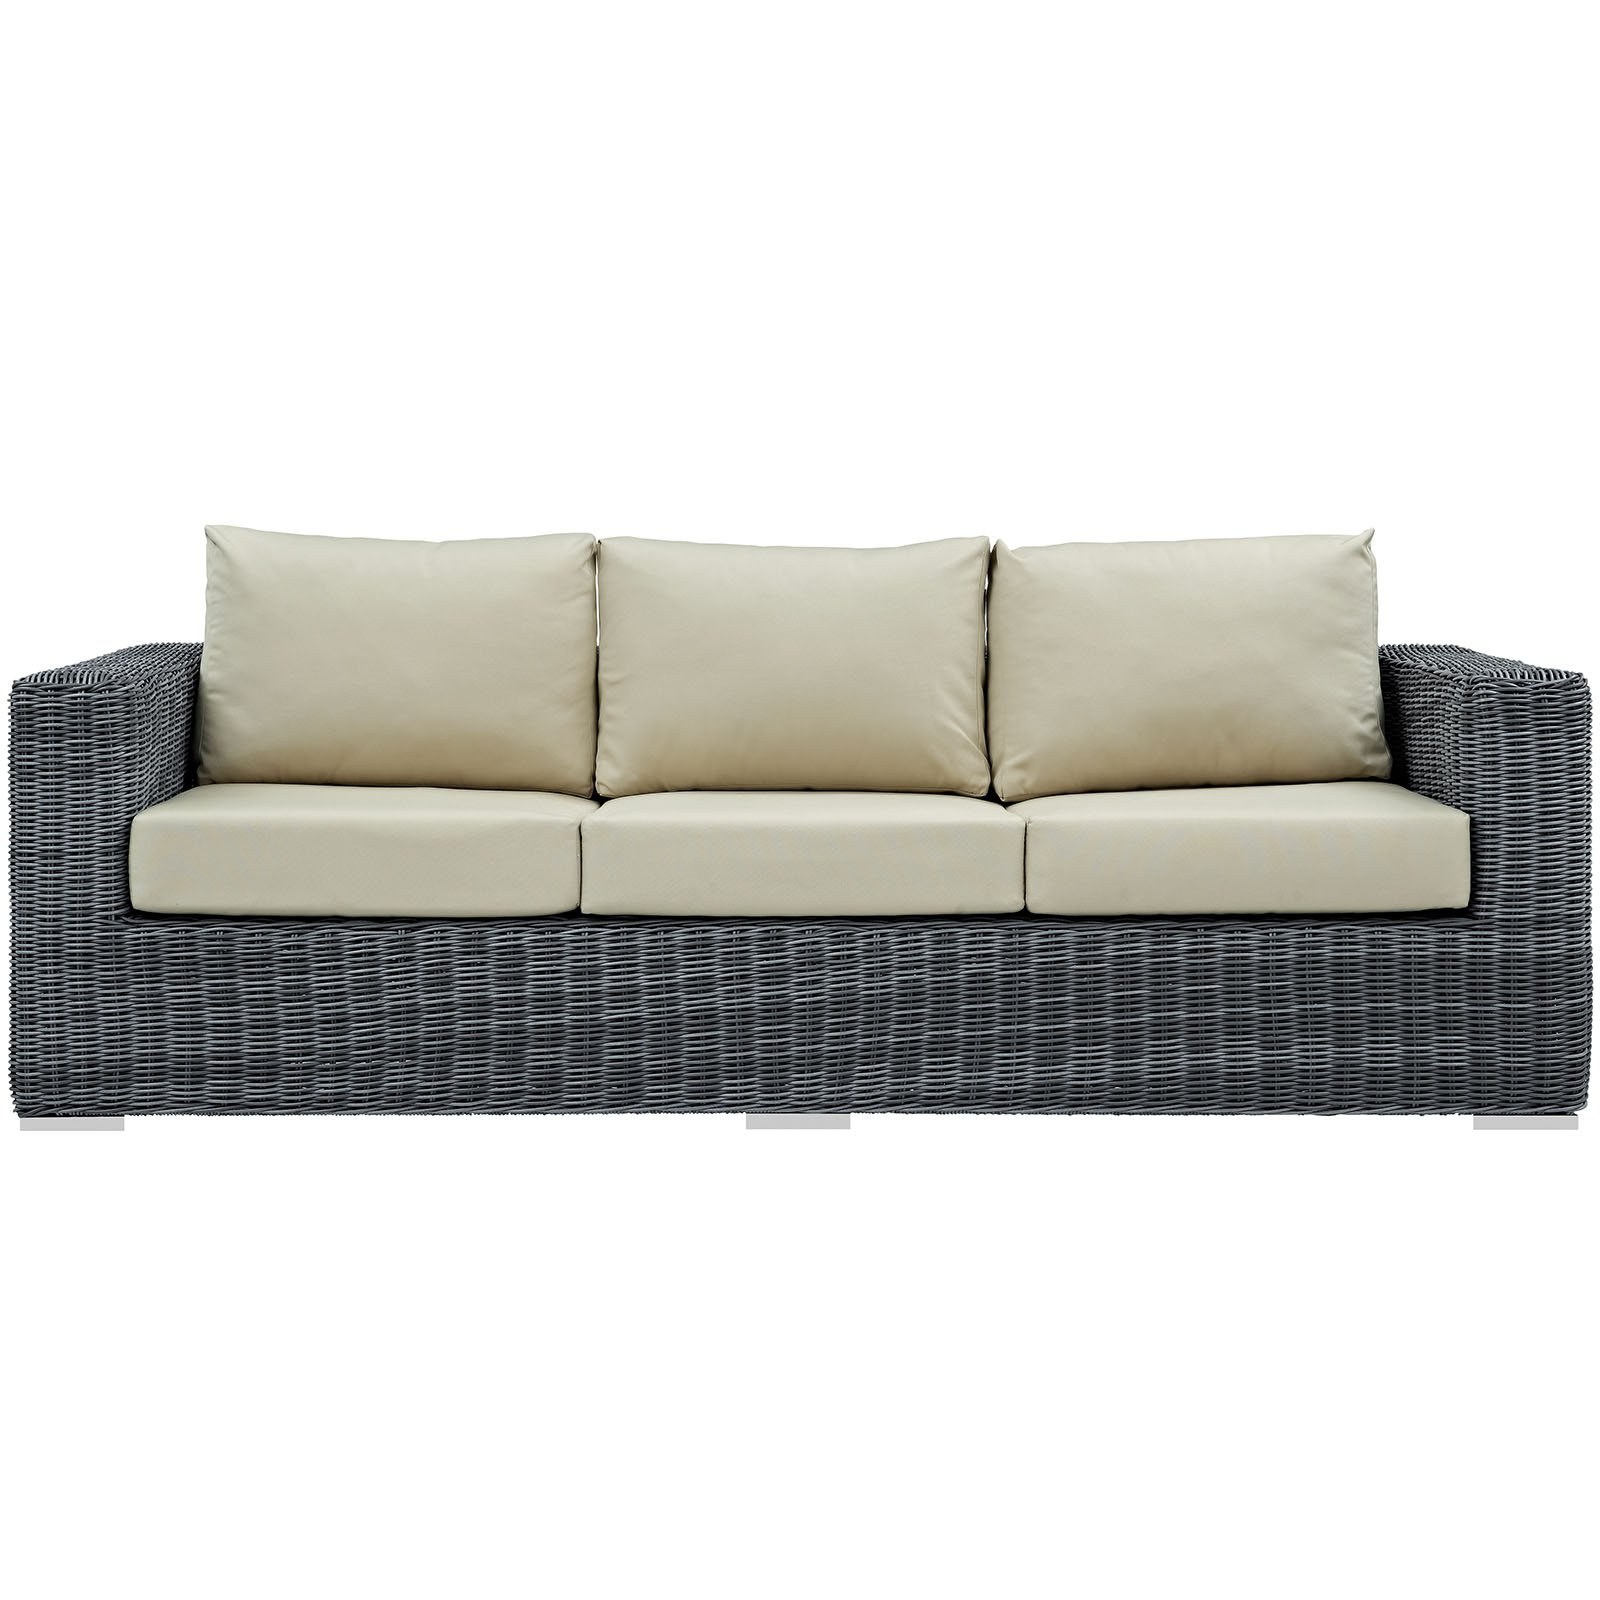 Outdoor Couch Modway Summon Outdoor Patio Sunbrella Sofa Multiple Colors